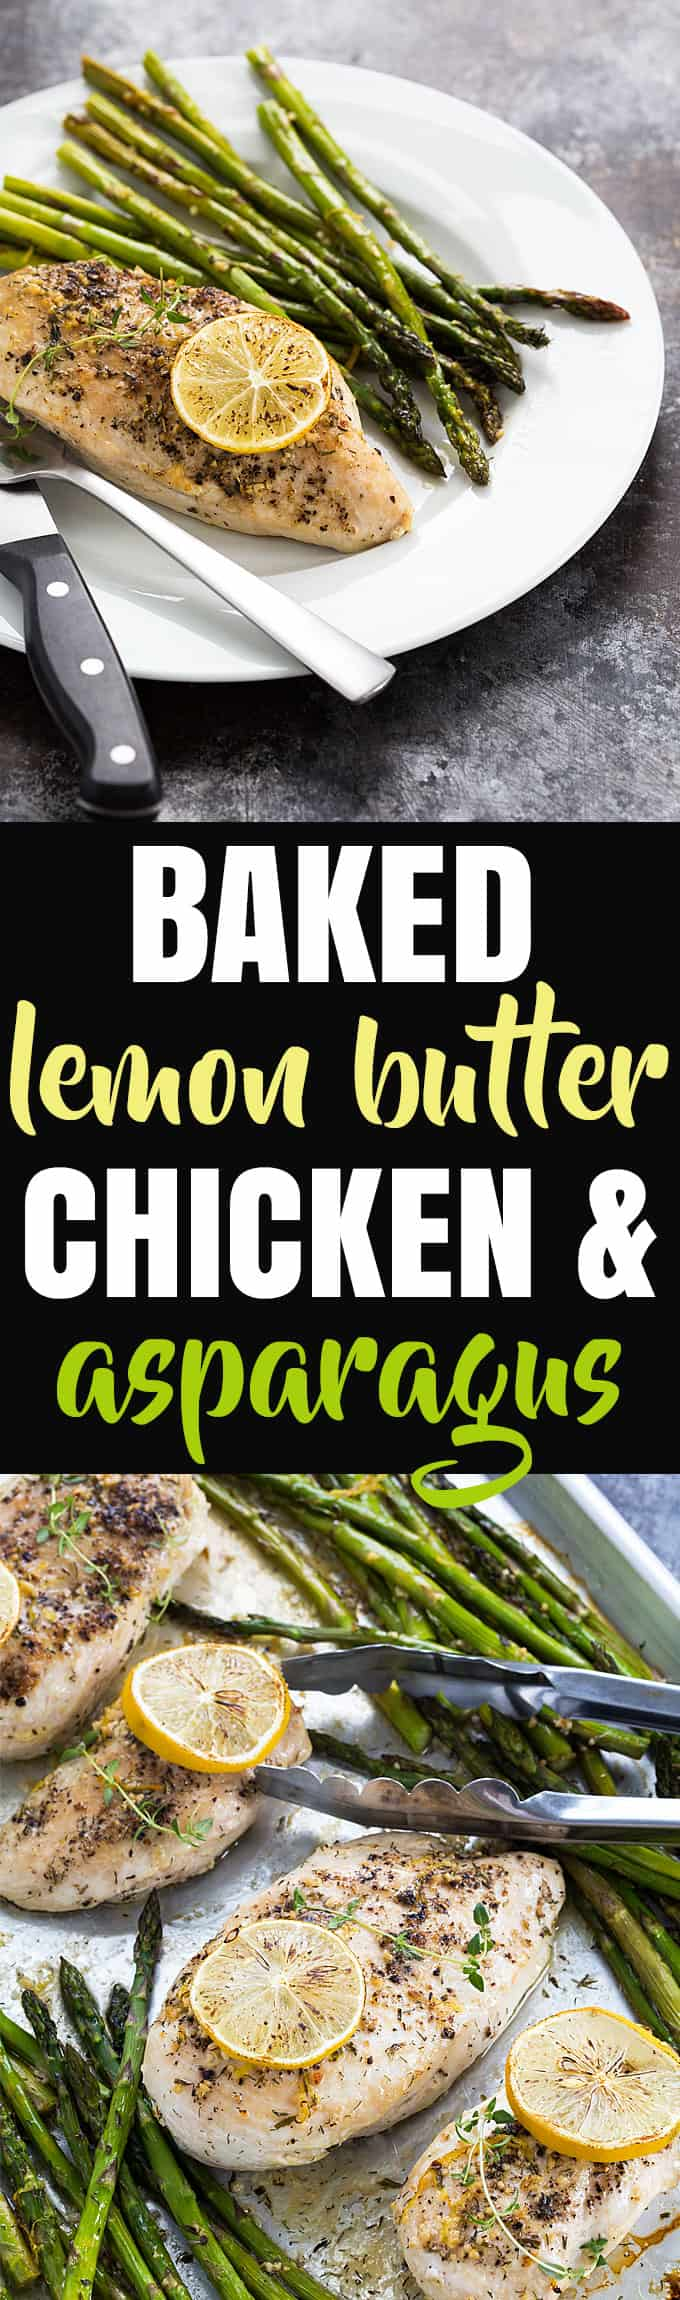 A two image vertical collage of baked lemon butter chicken and asparagus with overlay text.